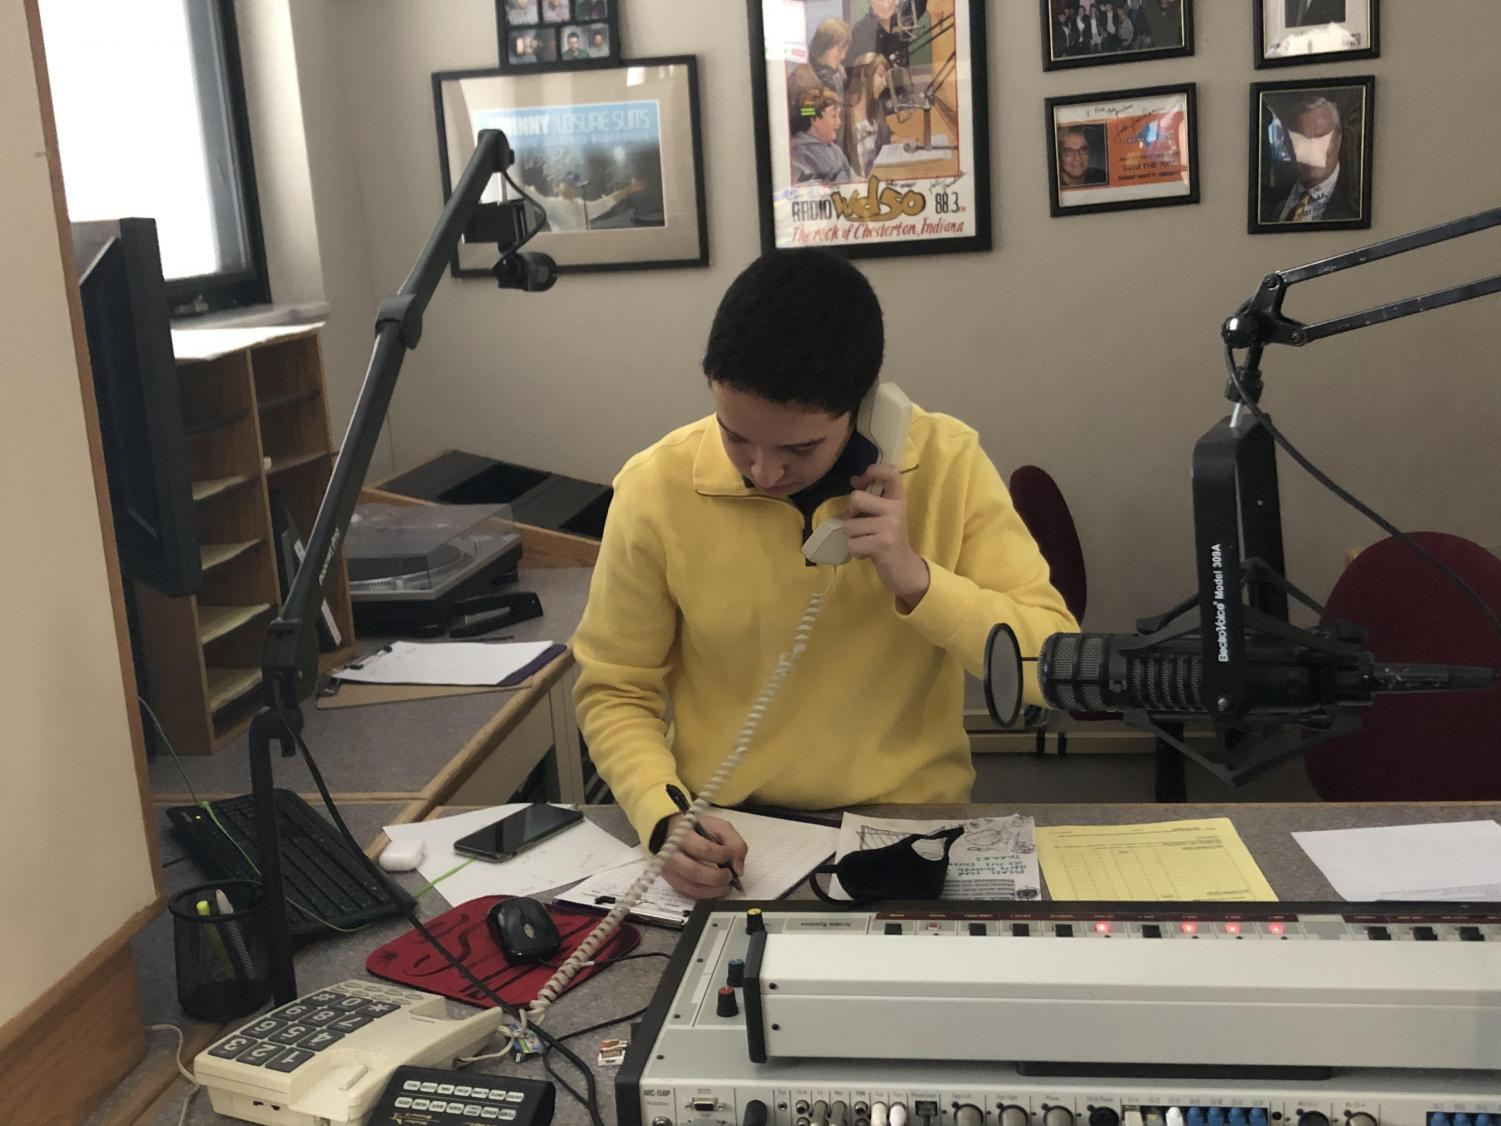 Chesterton High School's Own WDSO Celebrates The 30th Anniversary of Radiothon